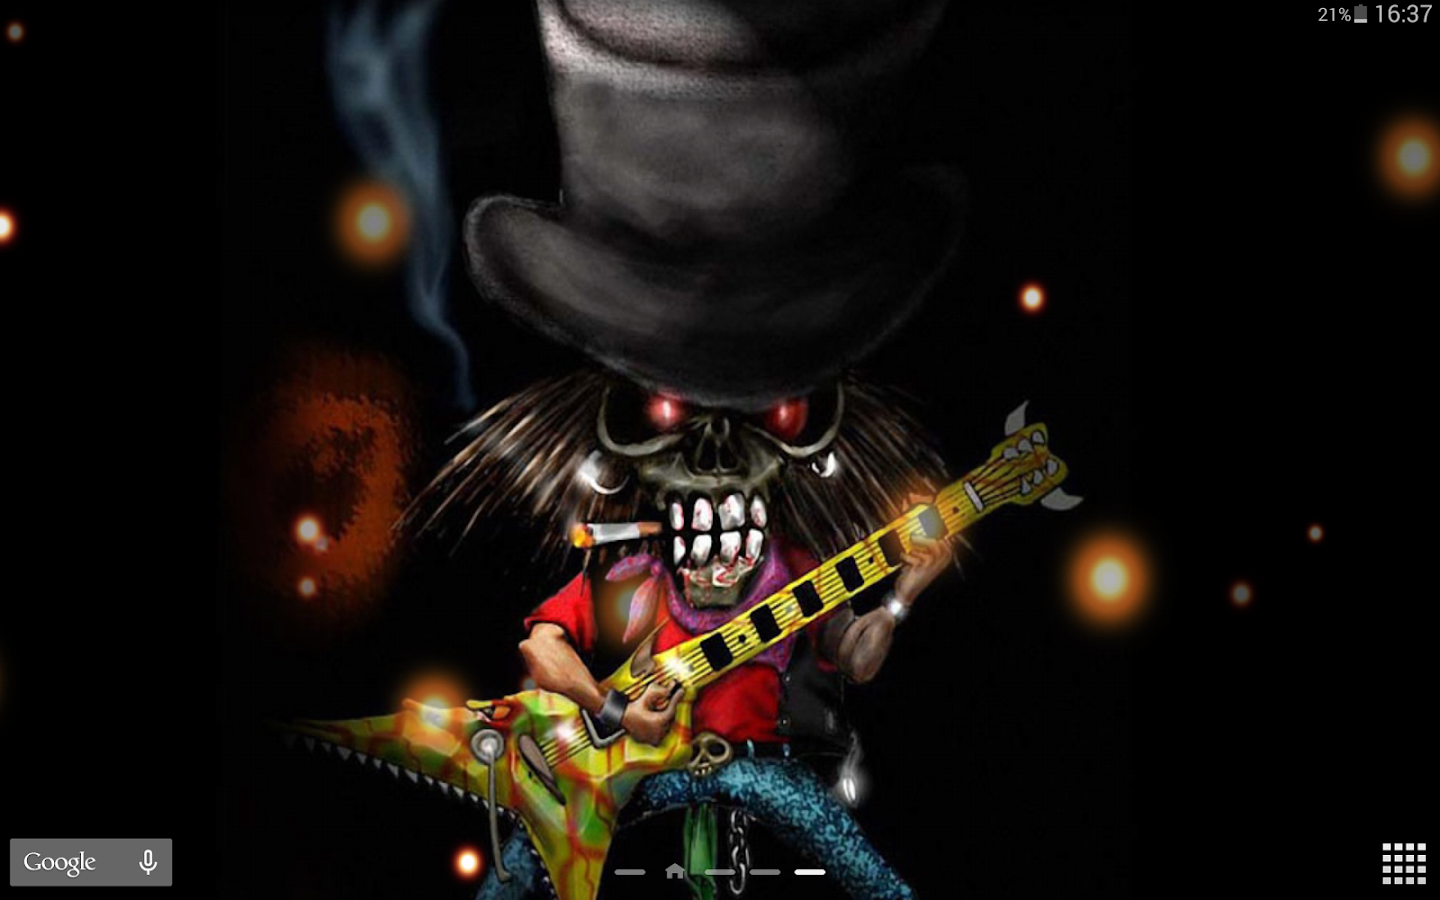 Rock Wallpaper Animasi Apl Android Di Google Play